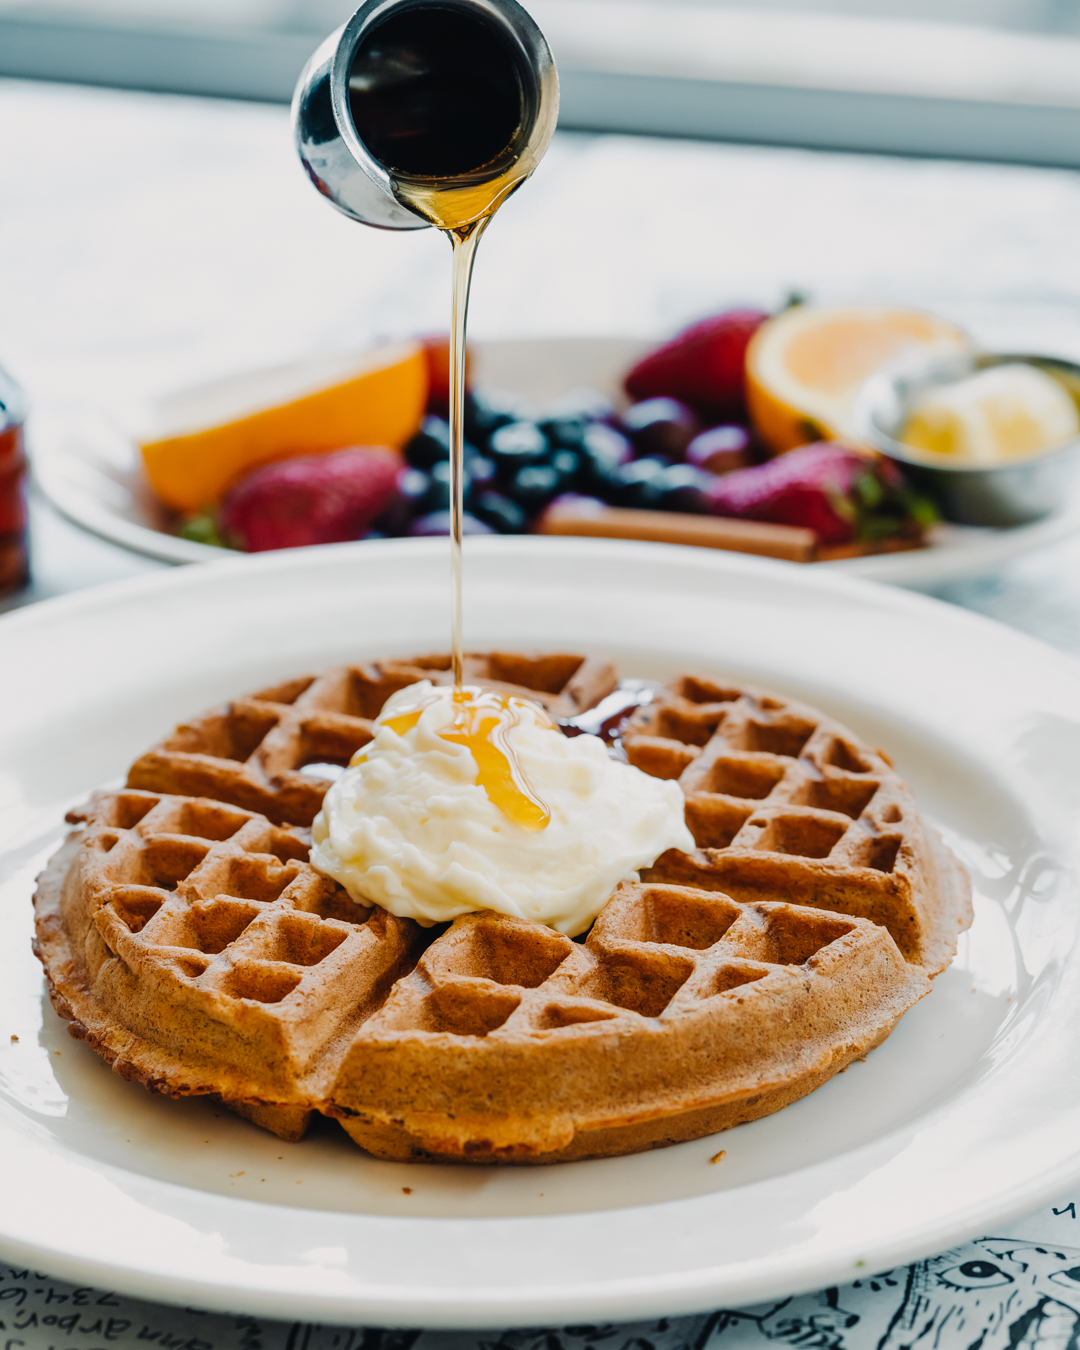 Waffle with Syrup pour